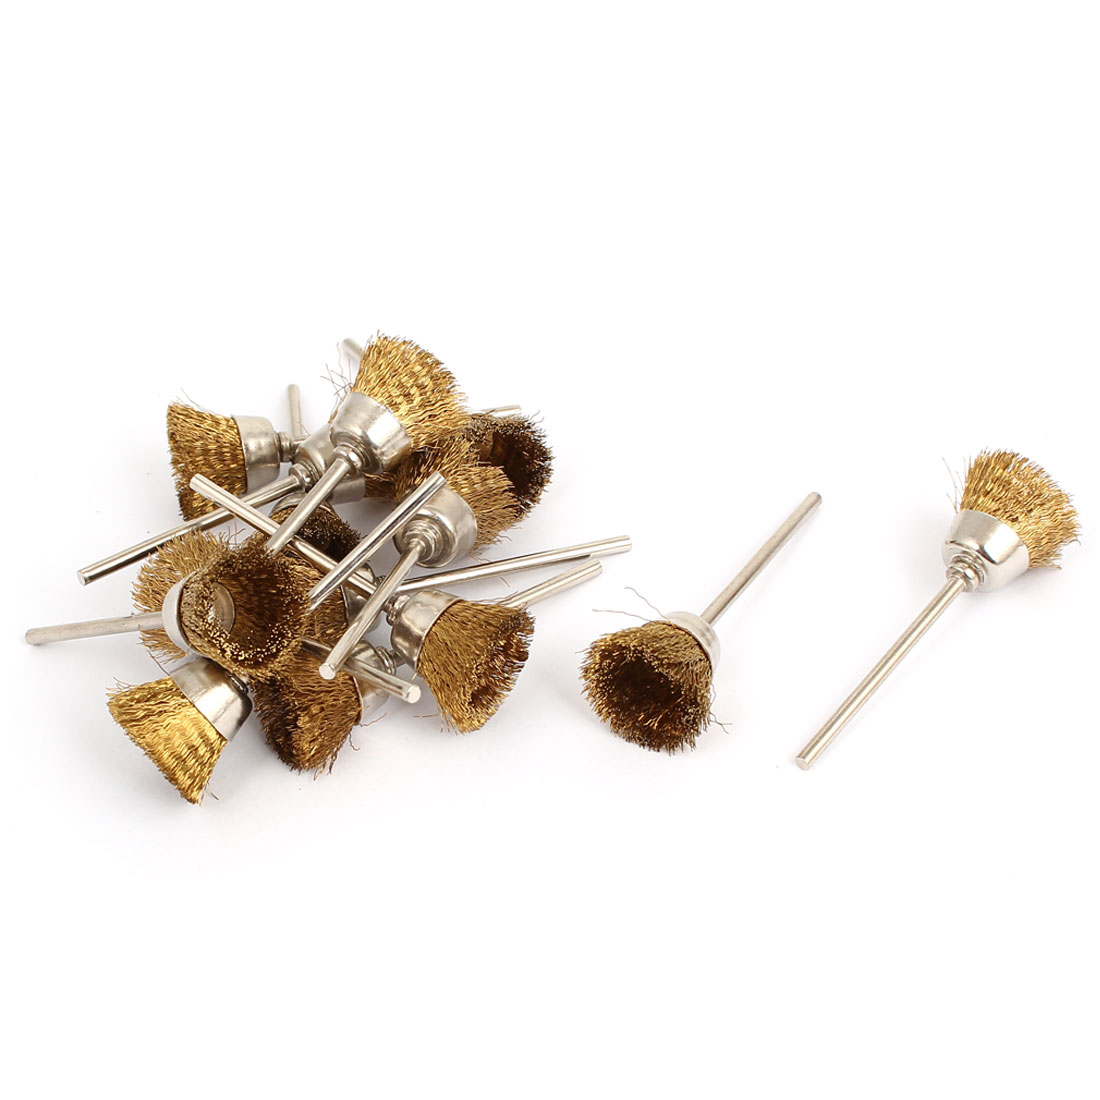 14pcs 2.3mm Shank 15mm Gold Tone Stainless Steel Cup Design Bristle Polishing Brush for Rotary Tool